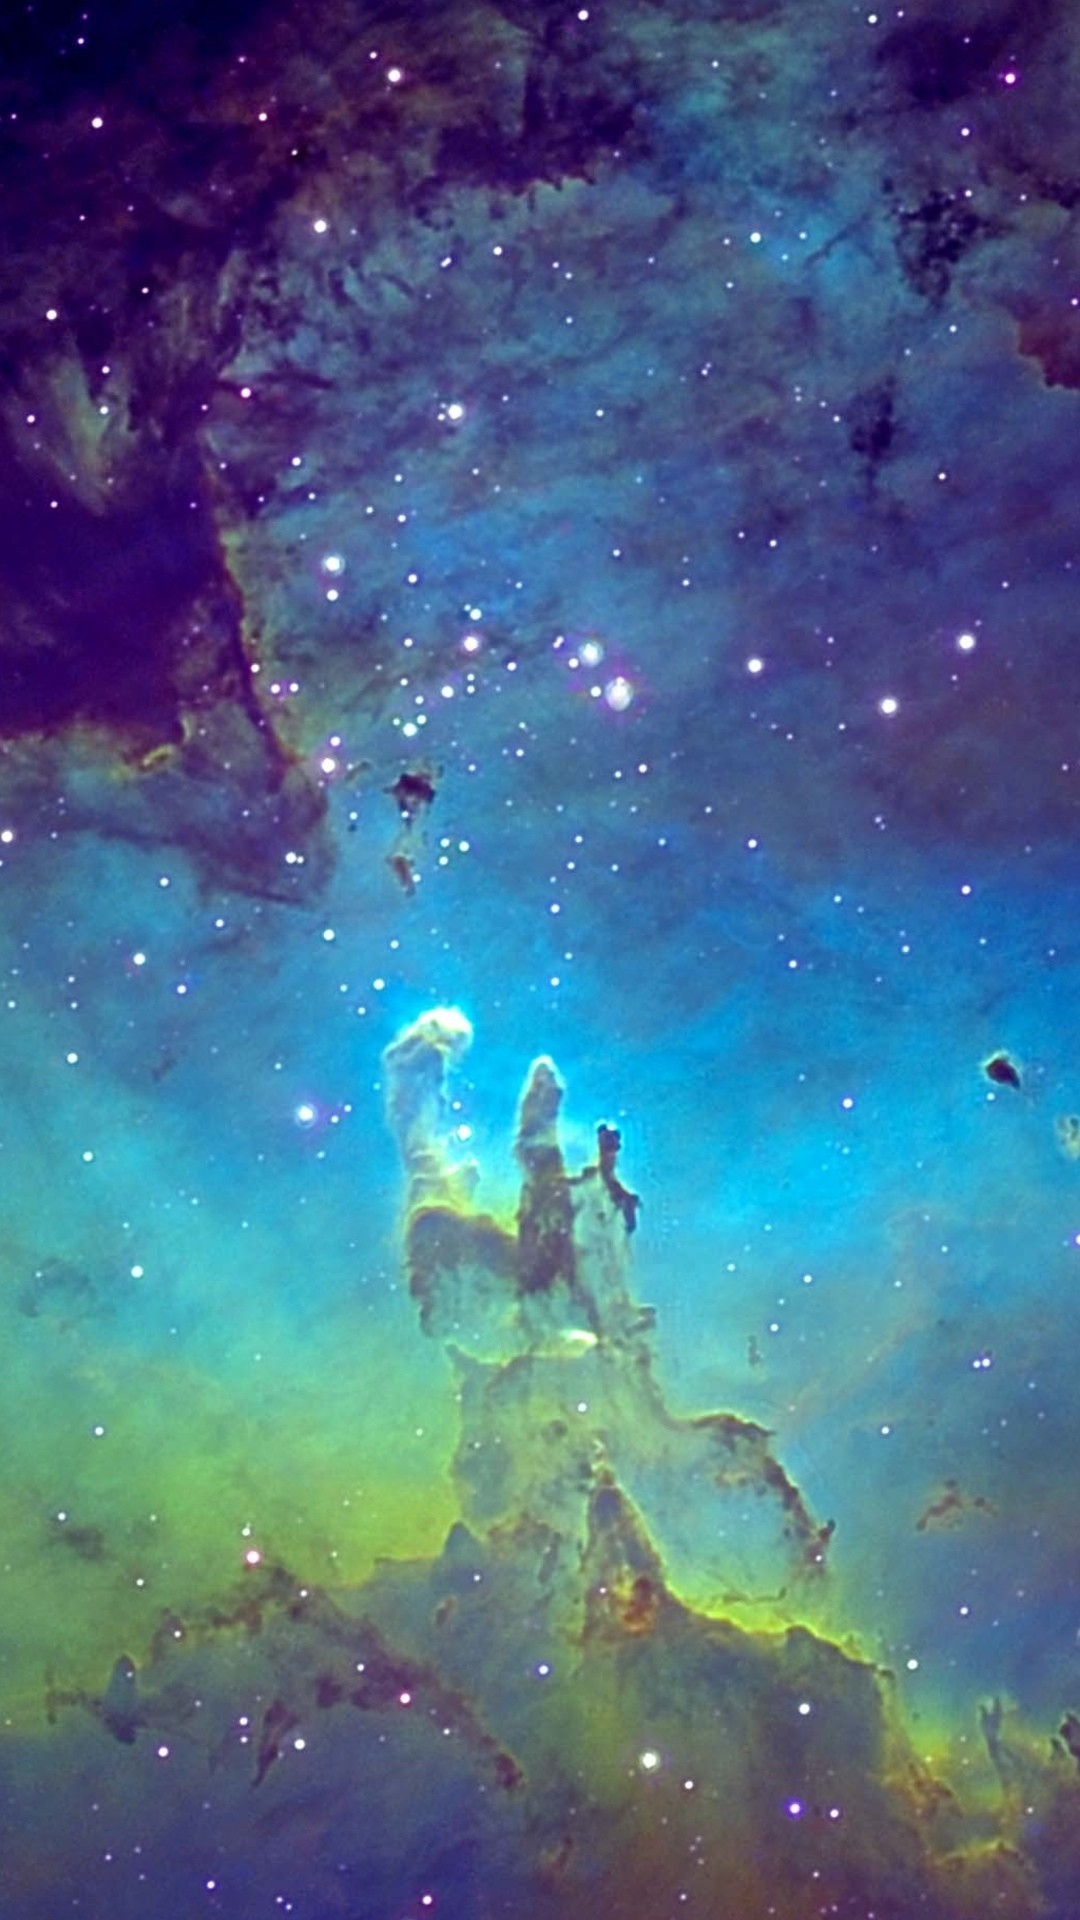 Galaxy wallpaper for iphone 6 81 images 1080x1920 night water rain iphone 6 wallpapers voltagebd Image collections